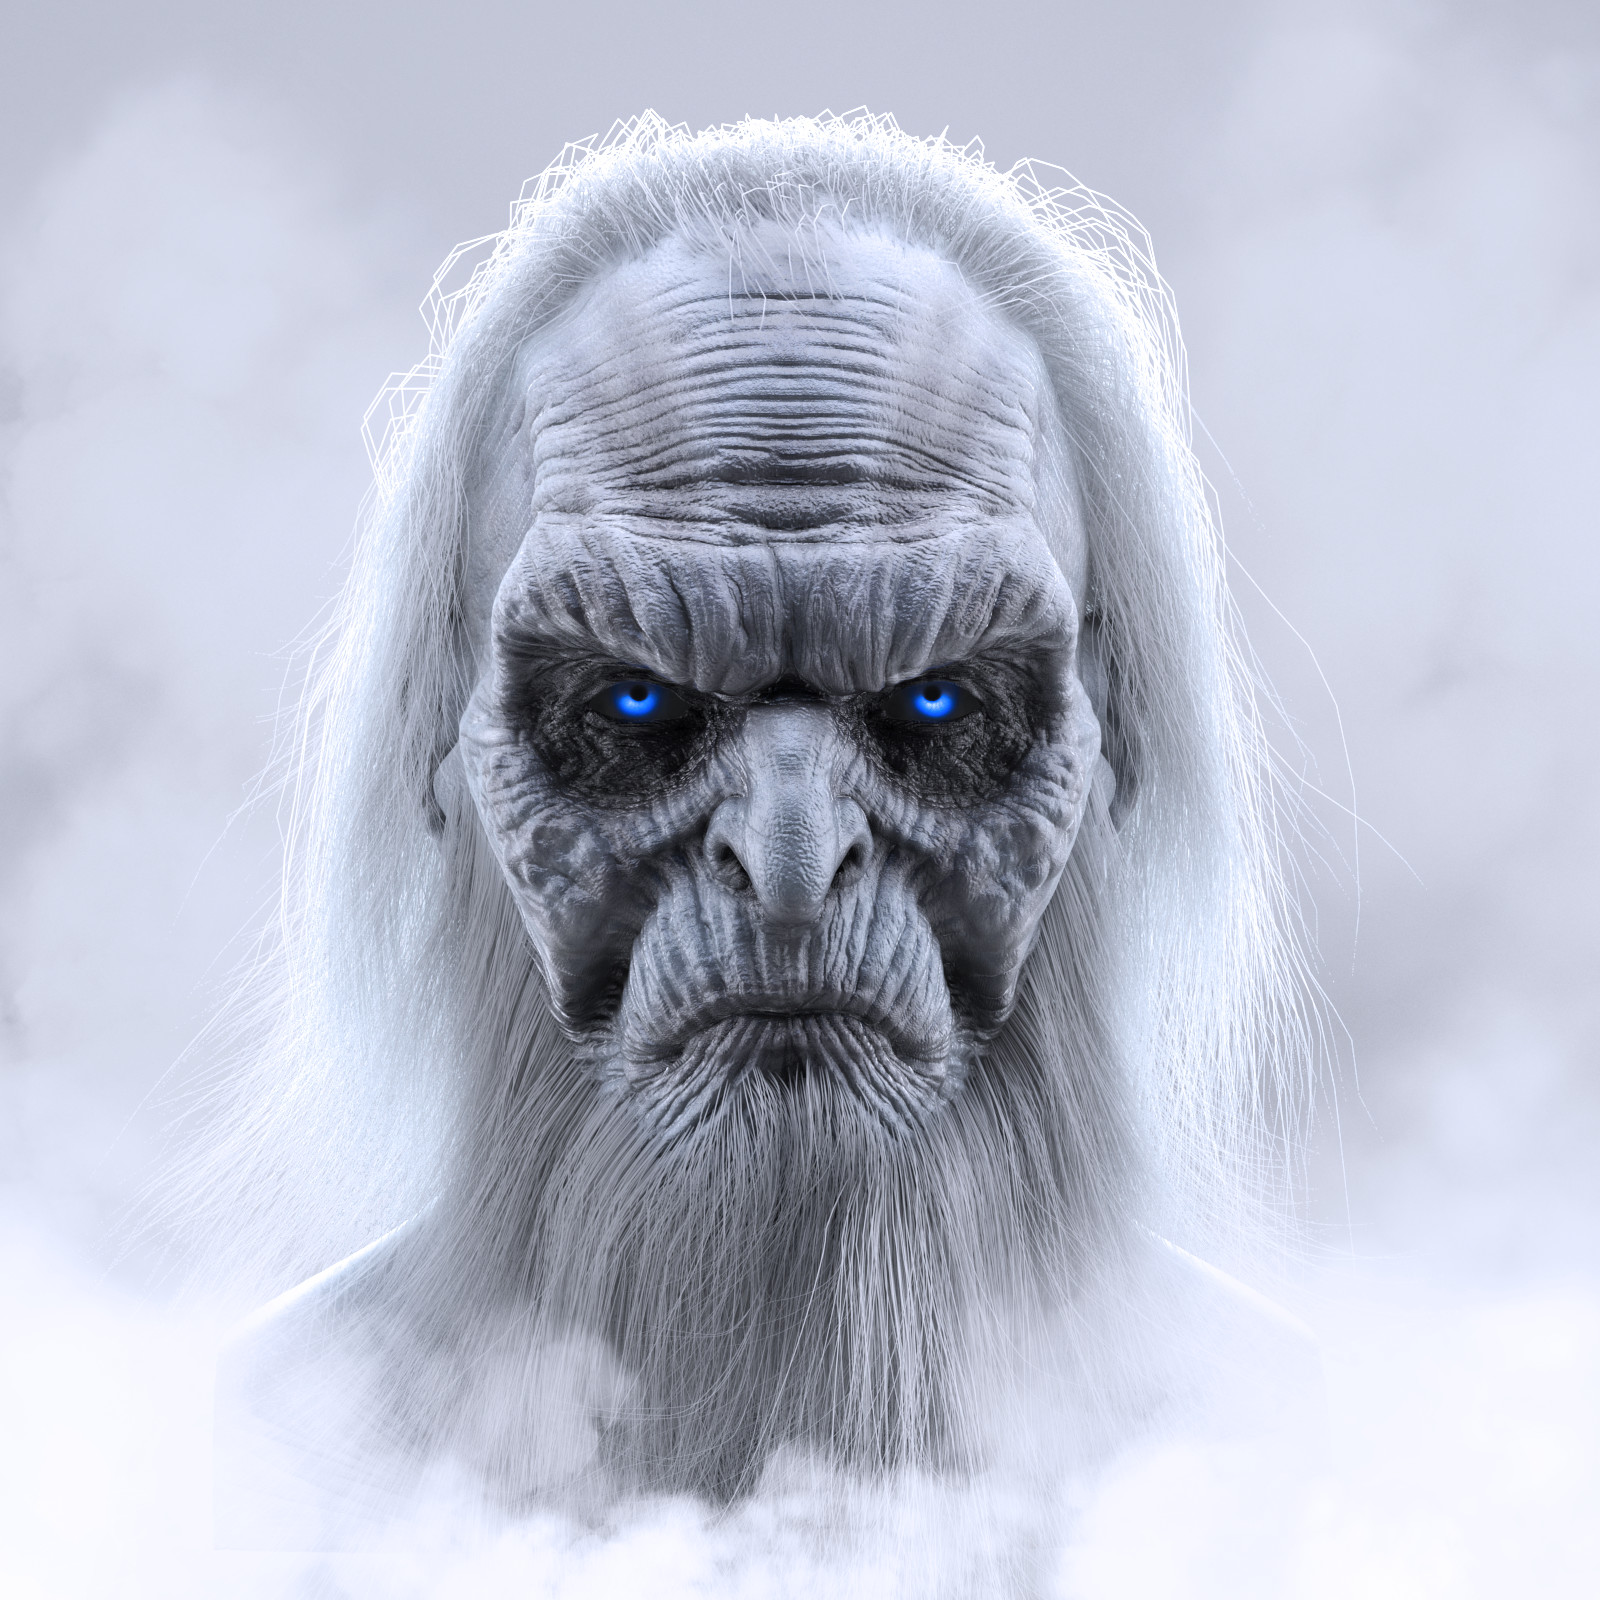 Alexandrino silva final white walker